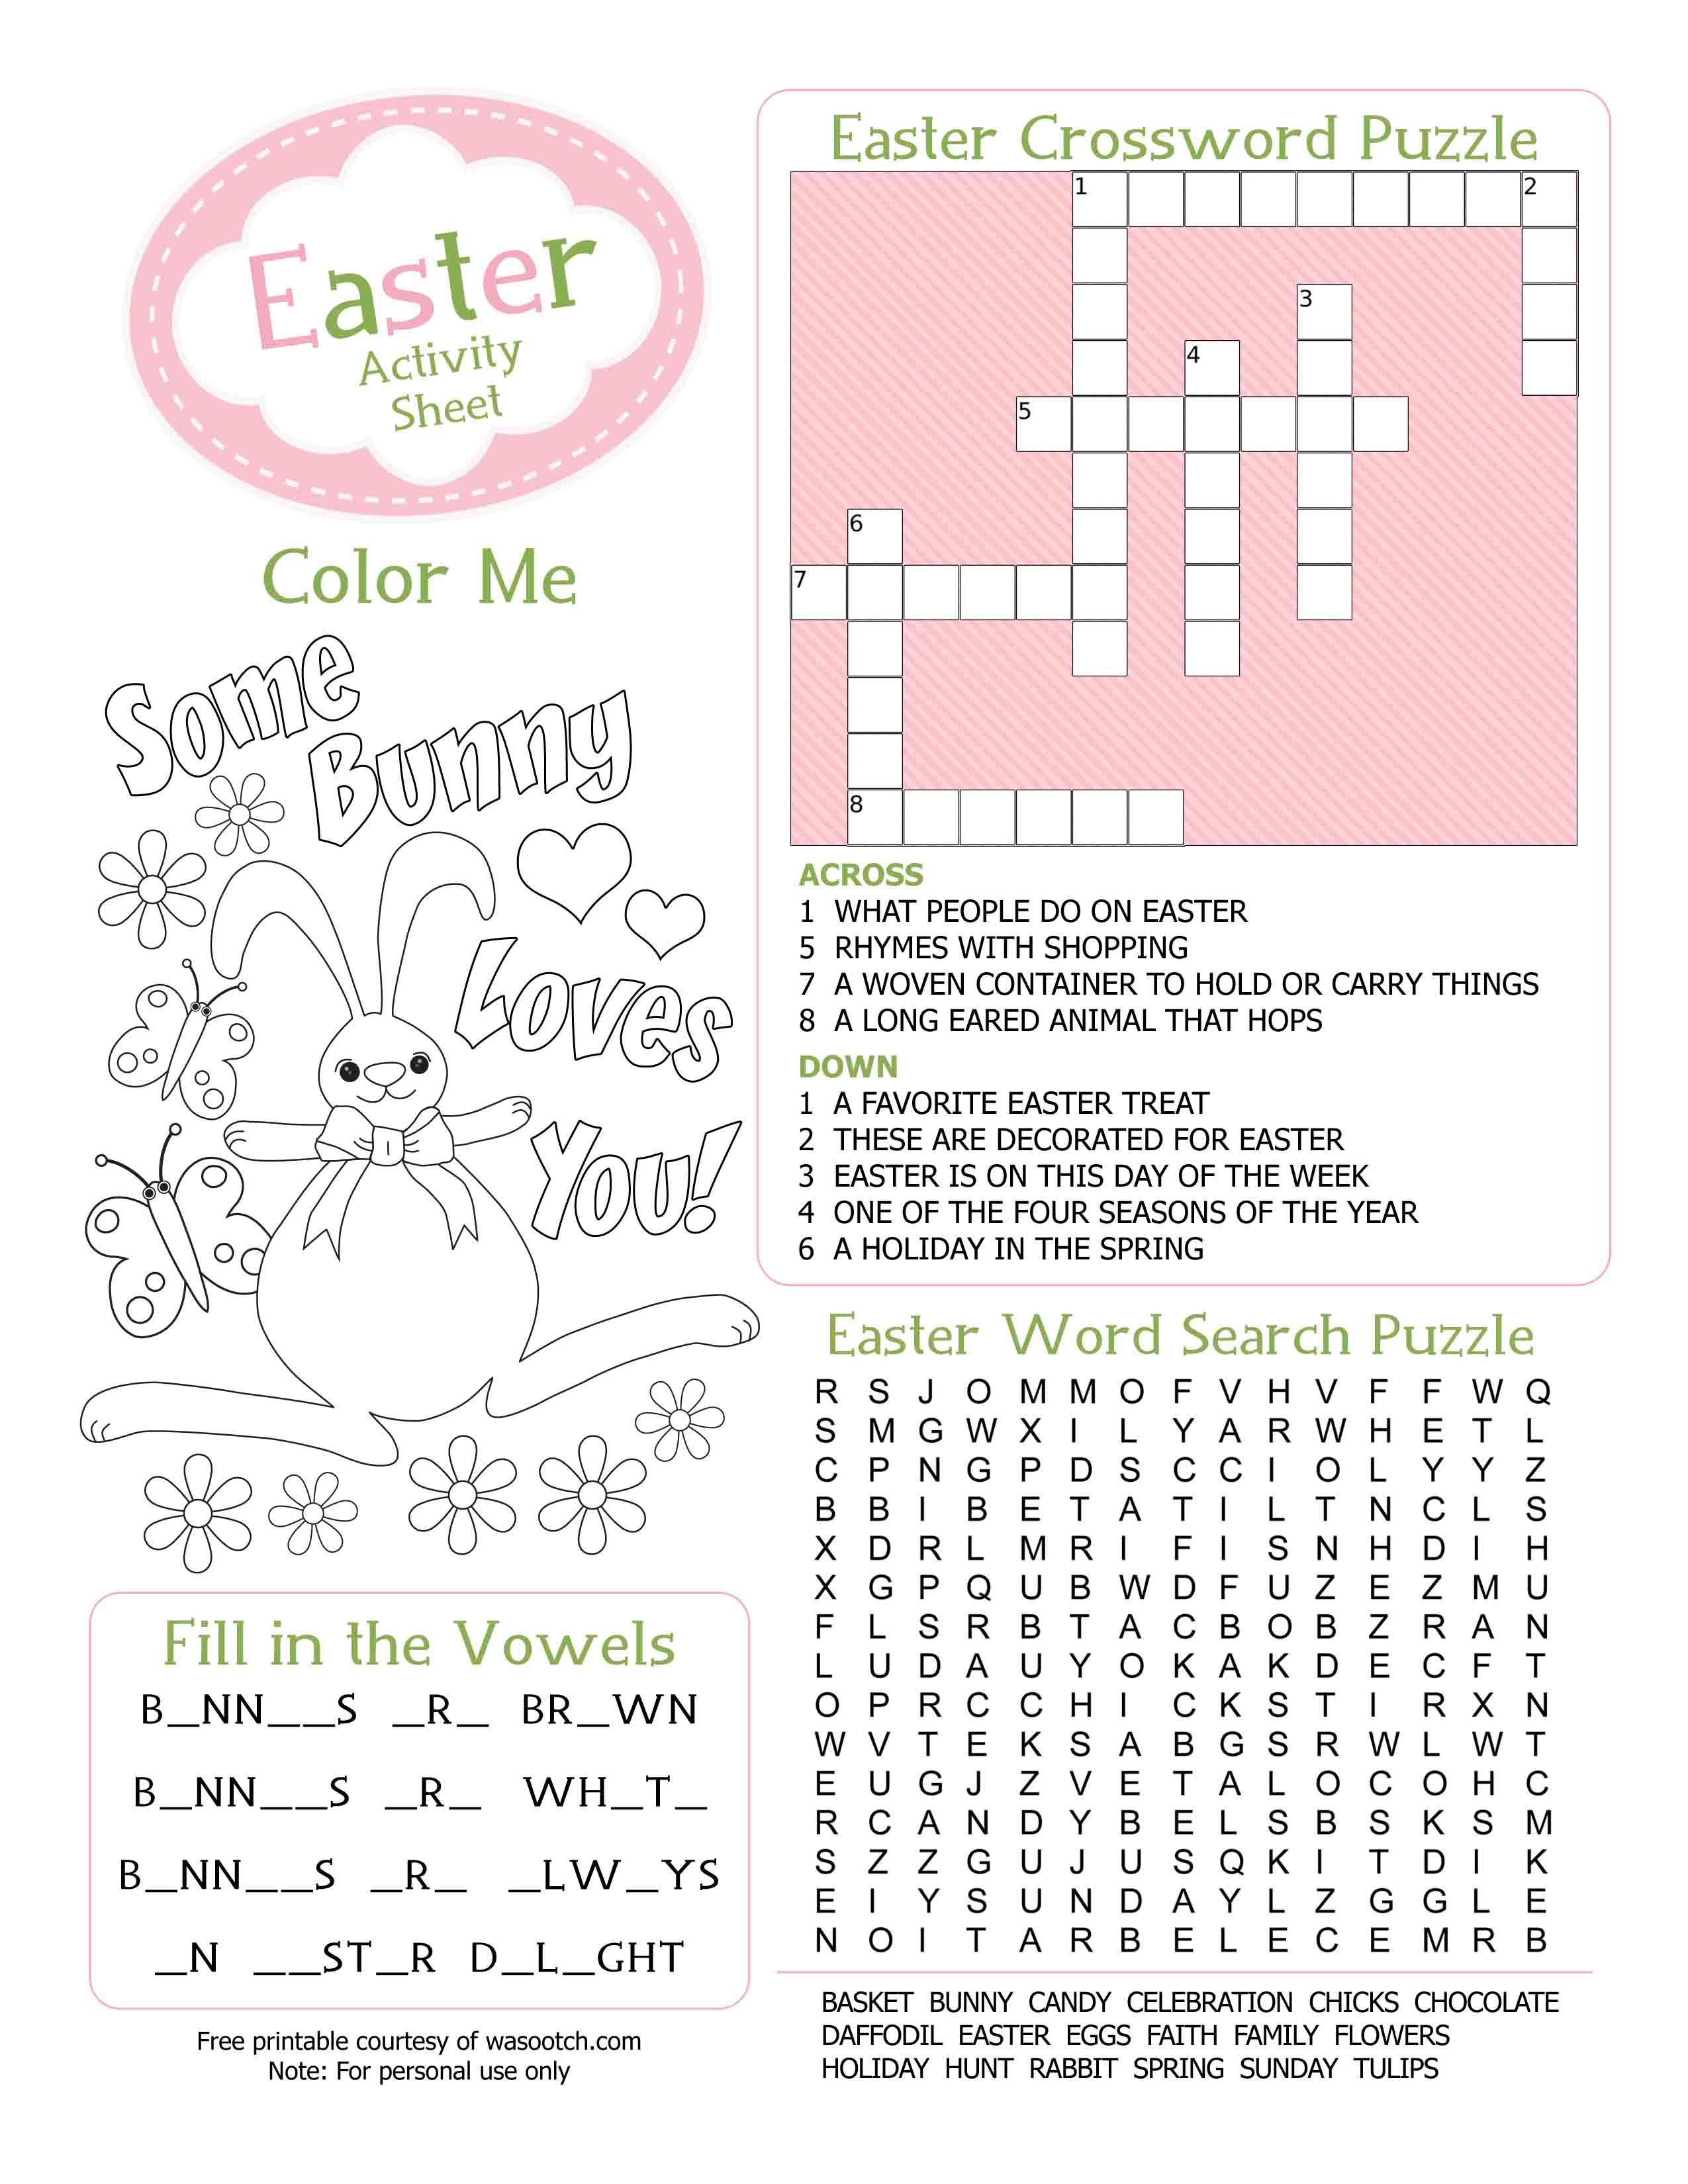 Easter Kid's Activity Sheet Free Printables Available @party - Easter Games For Adults Printable Free